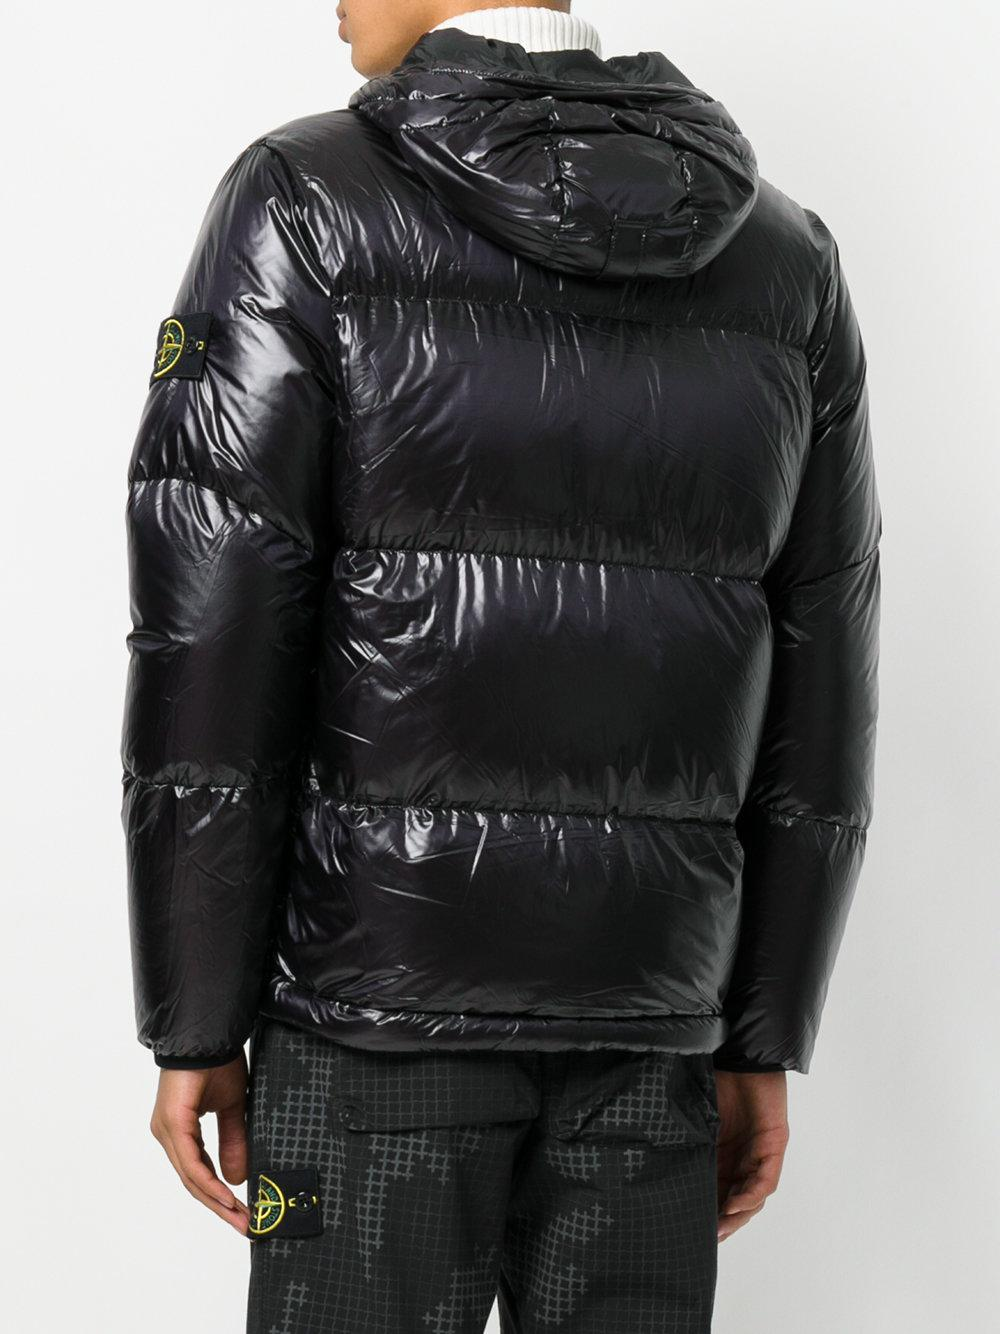 Stone Island Synthetic Glossy Puffer Jacket In Black For